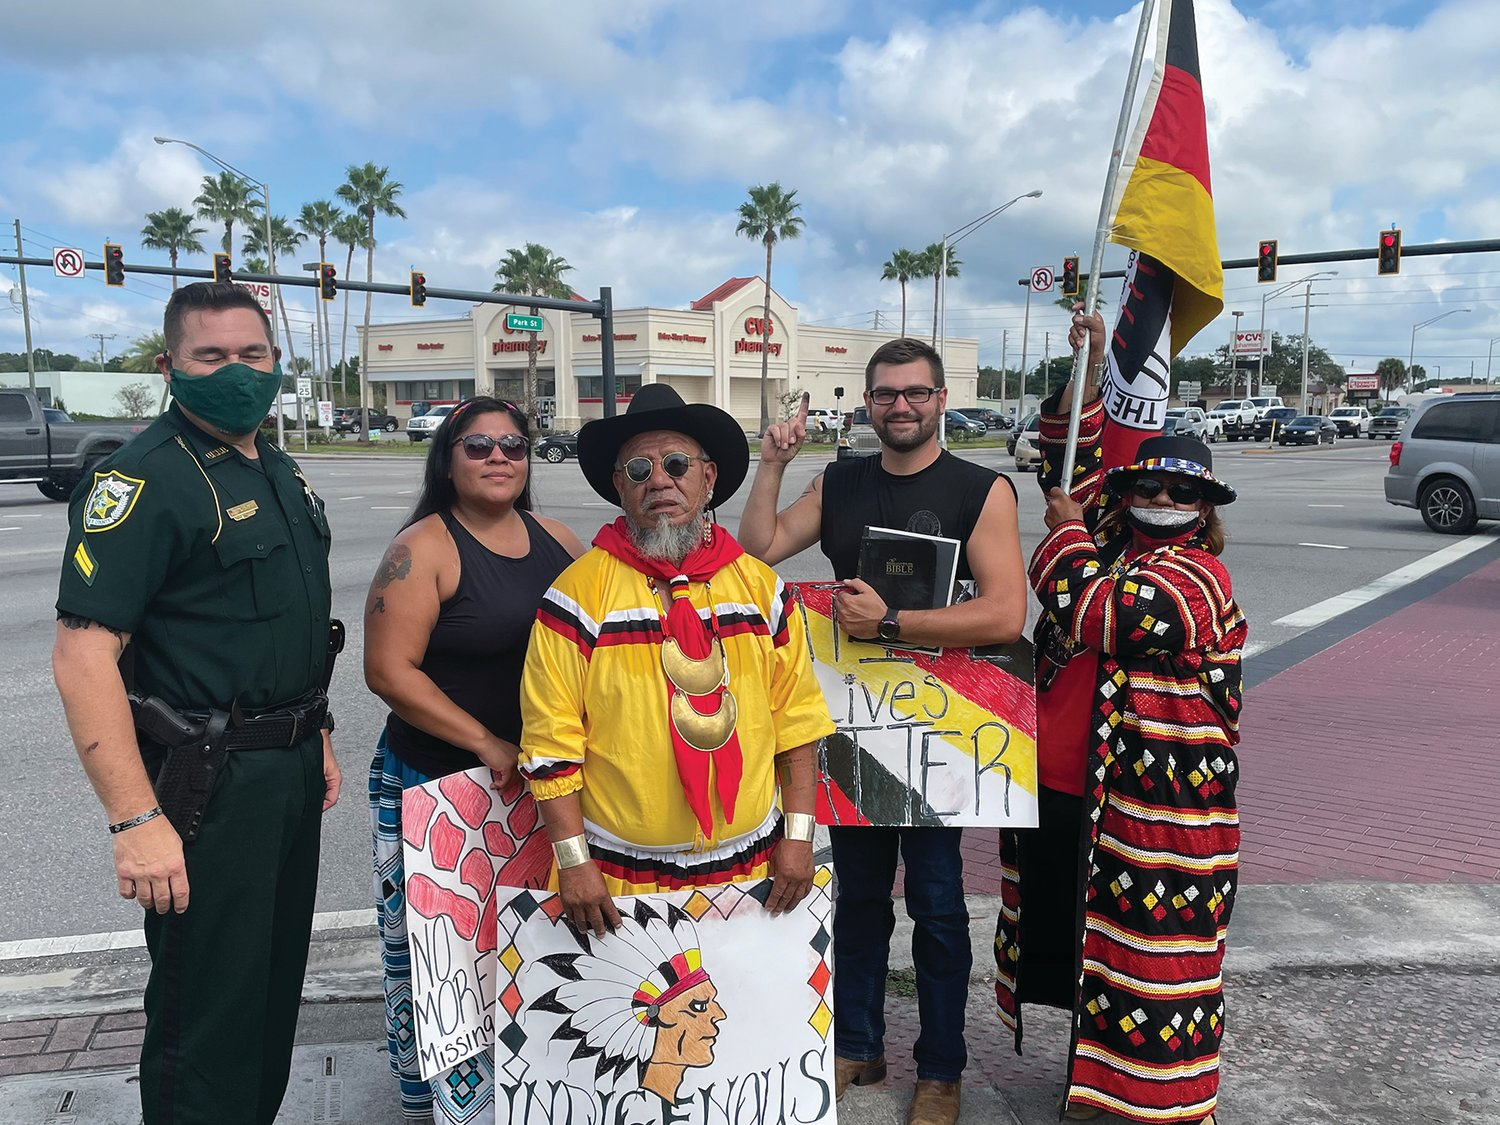 OKEECHOBEE — Native Americans observed National Native American Heritage Month with a demonstration in Flagler Park on Saturday. Okeechobee County Sheriff's Office Community Liaison Cpl. Jack Nash (left) stopped by to bring drinks to Alice Osceola, Sandy Billie and Martha Tommie. James White (center) was passing by when he noticed the demonstrators and stopped to ask how he could help.  For the story, see Page 14.